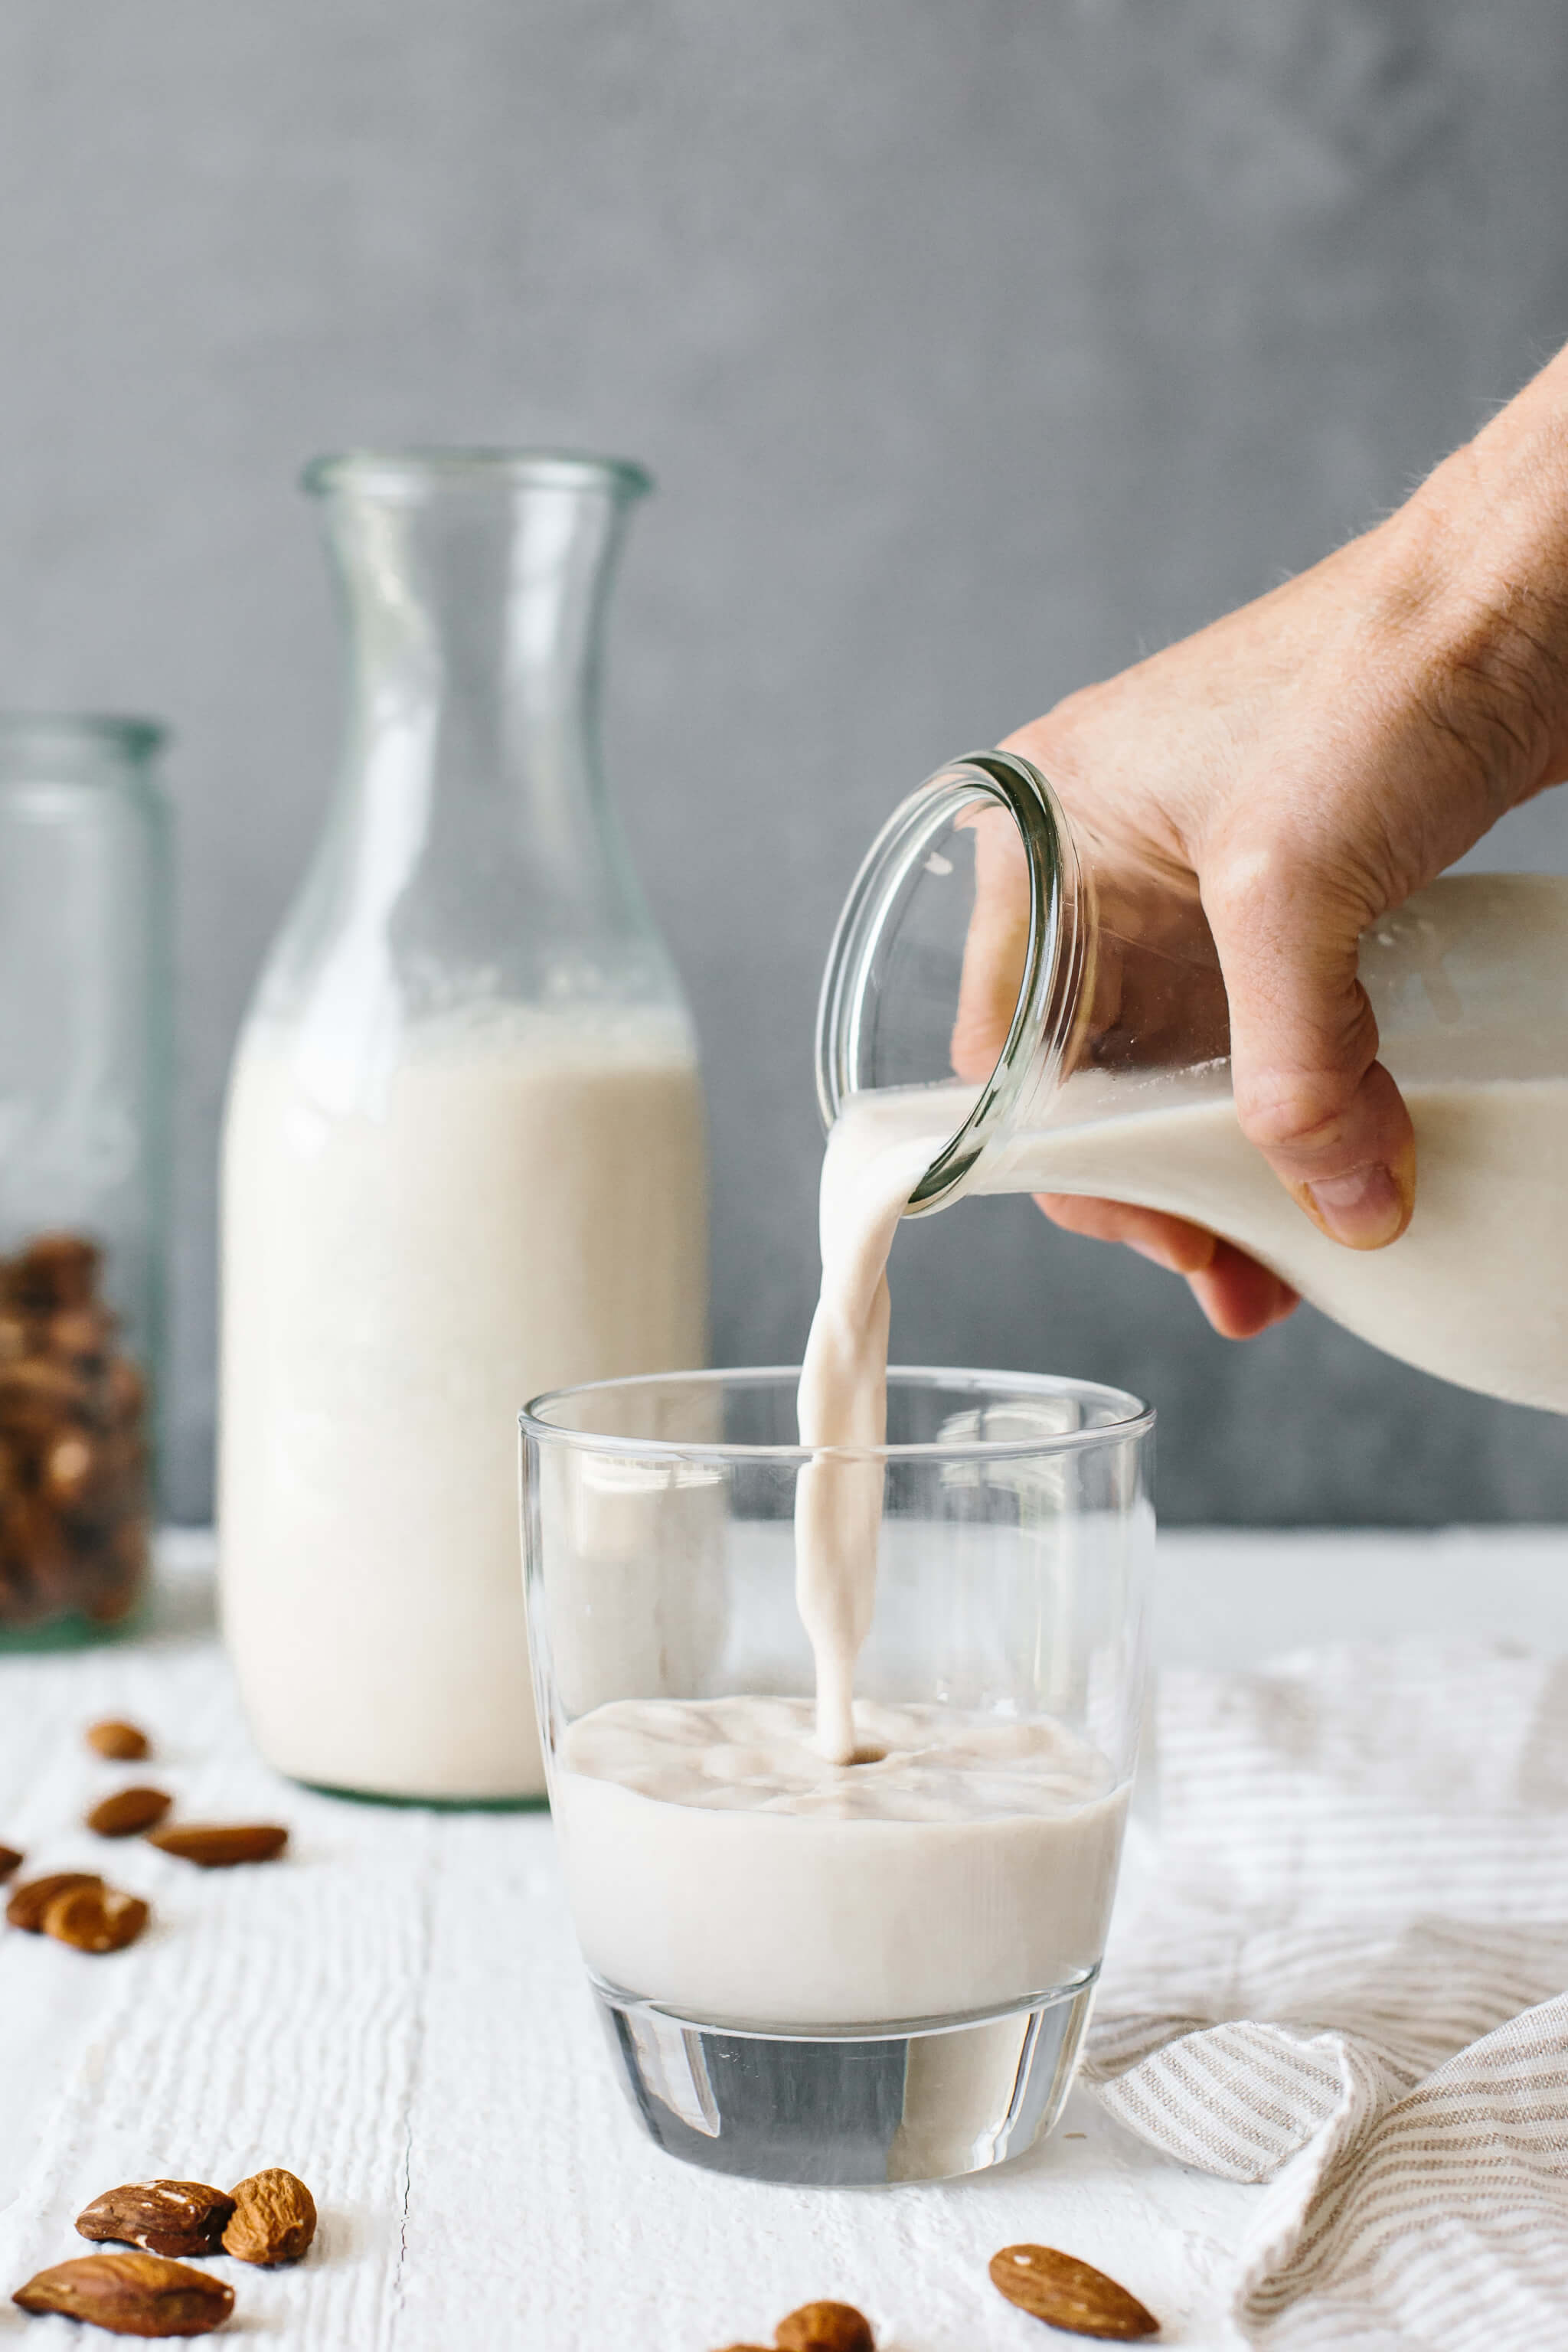 Pouring almond milk into a glass to drink.